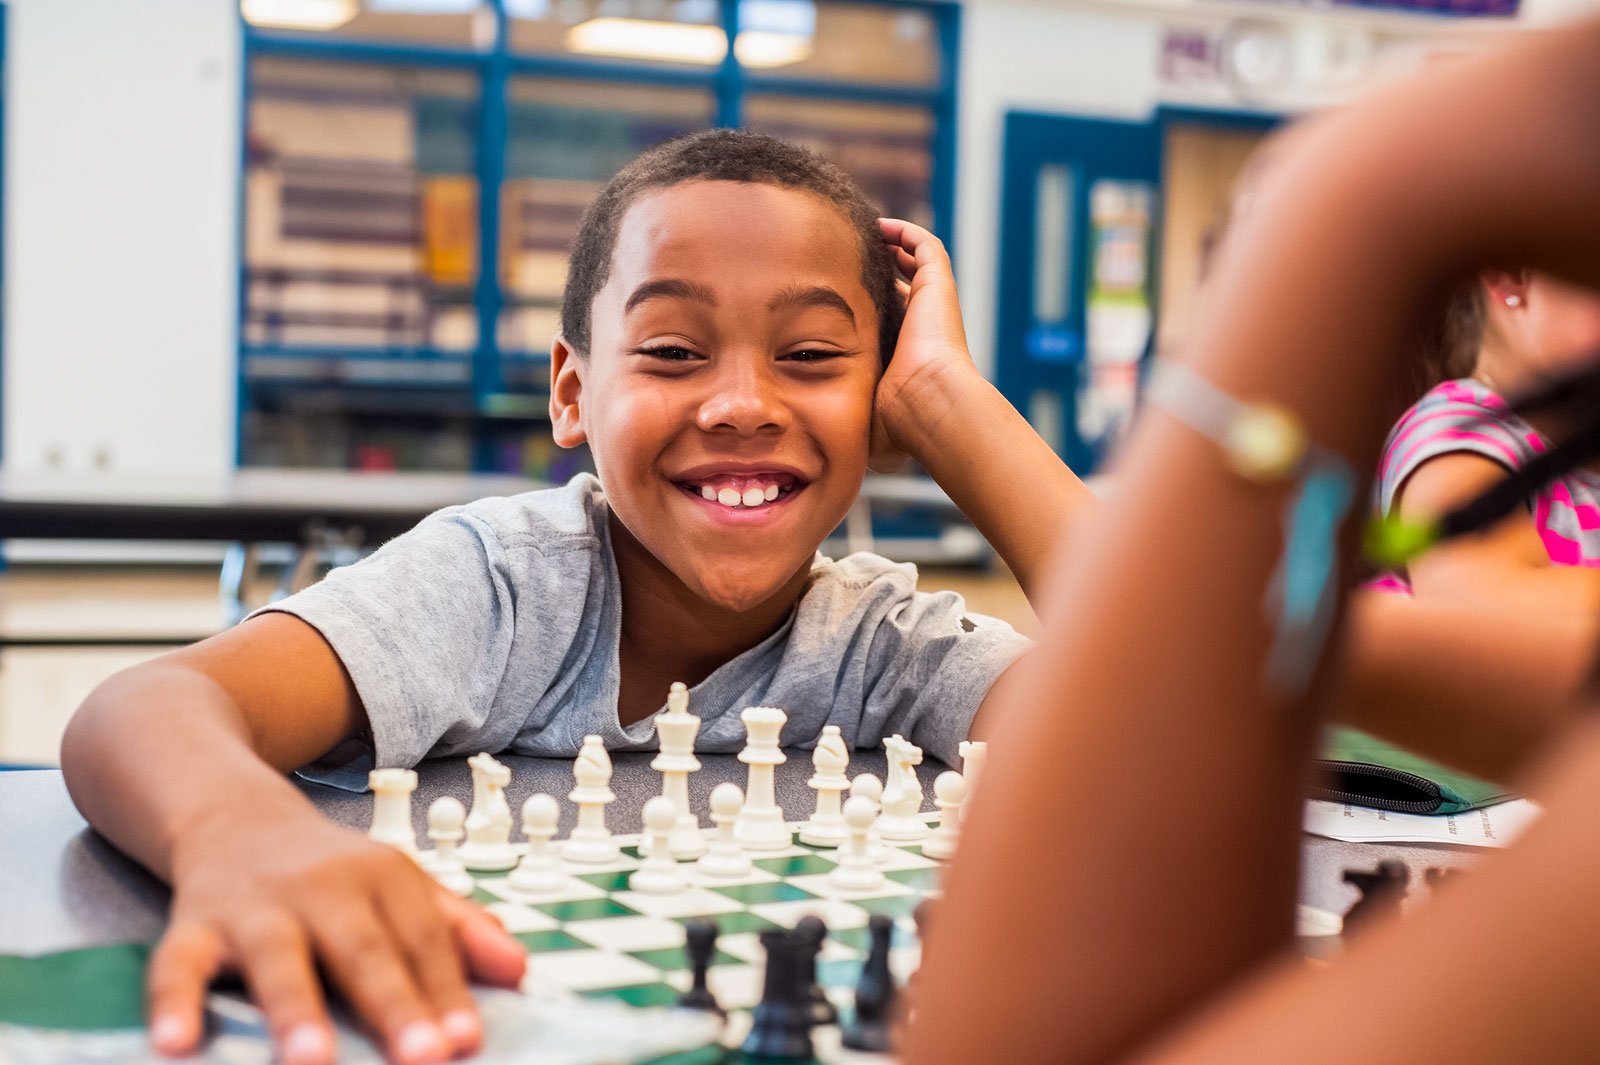 Boy Smiling Playing Chess